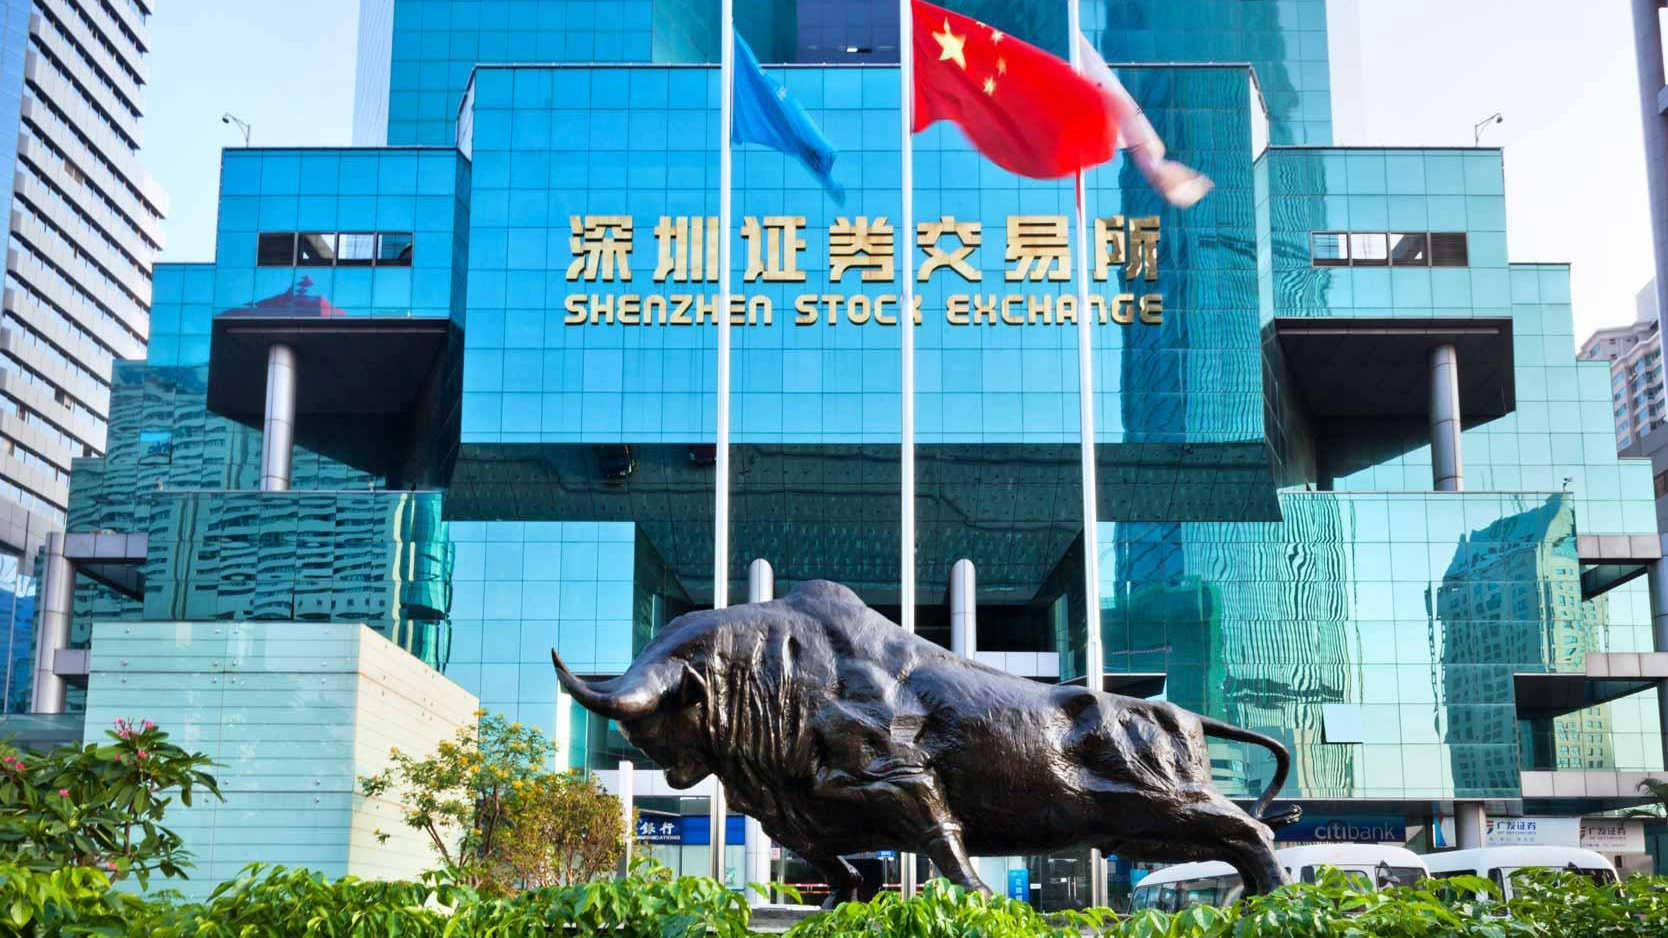 szse or the shenzhen stock exchange The shenzhen stock exchange (szse chinese: 深圳证券交易所) is a stock exchange based in the city of shenzhen, chinait is one of two stock exchanges operating independently in the people's republic of china, the other being the larger shanghai stock exchange.